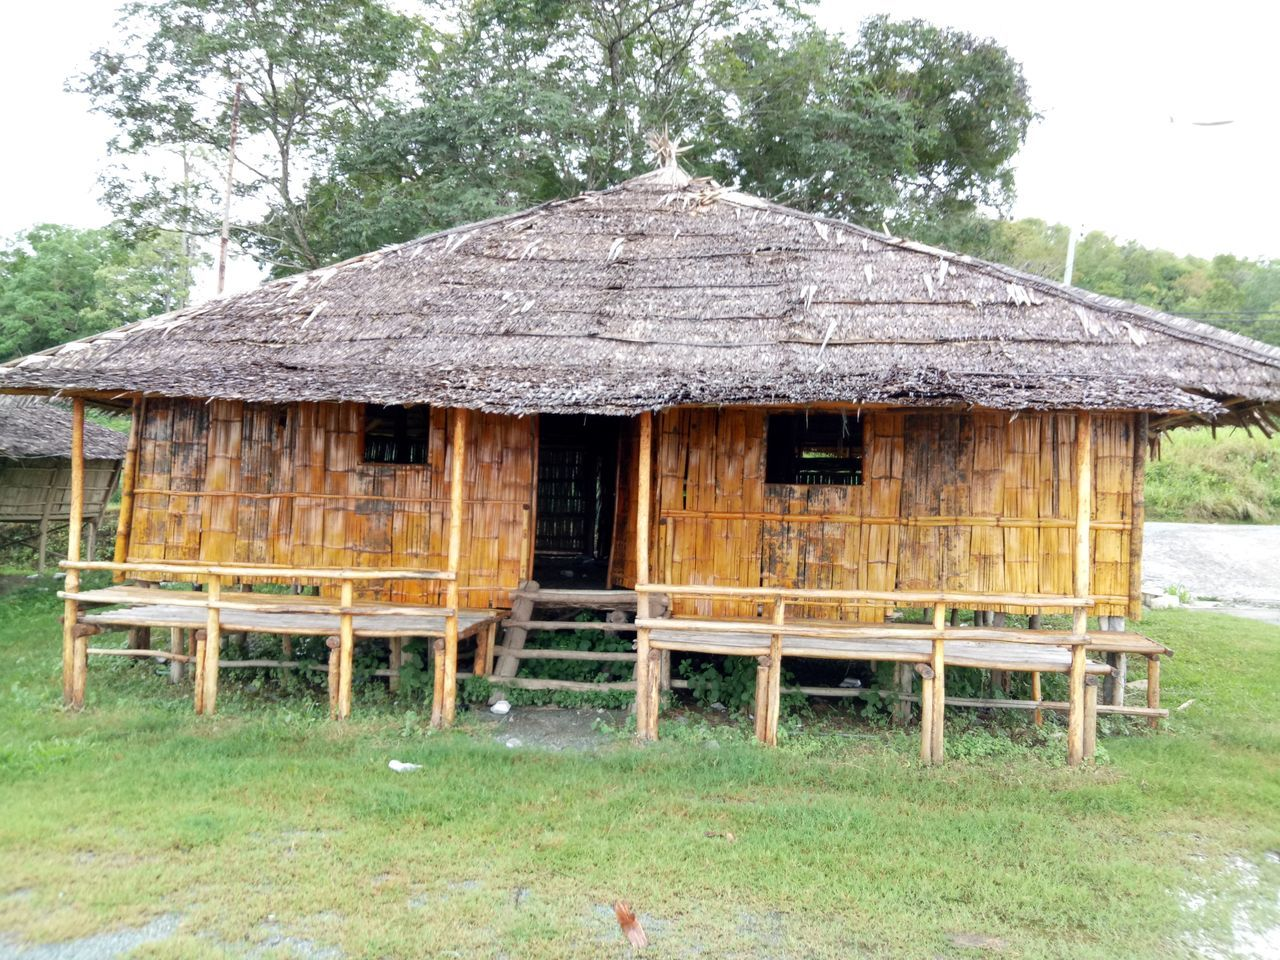 thatched roof, built structure, hut, wood - material, outdoors, building exterior, day, architecture, no people, grass, abandoned, nature, tree, beauty in nature